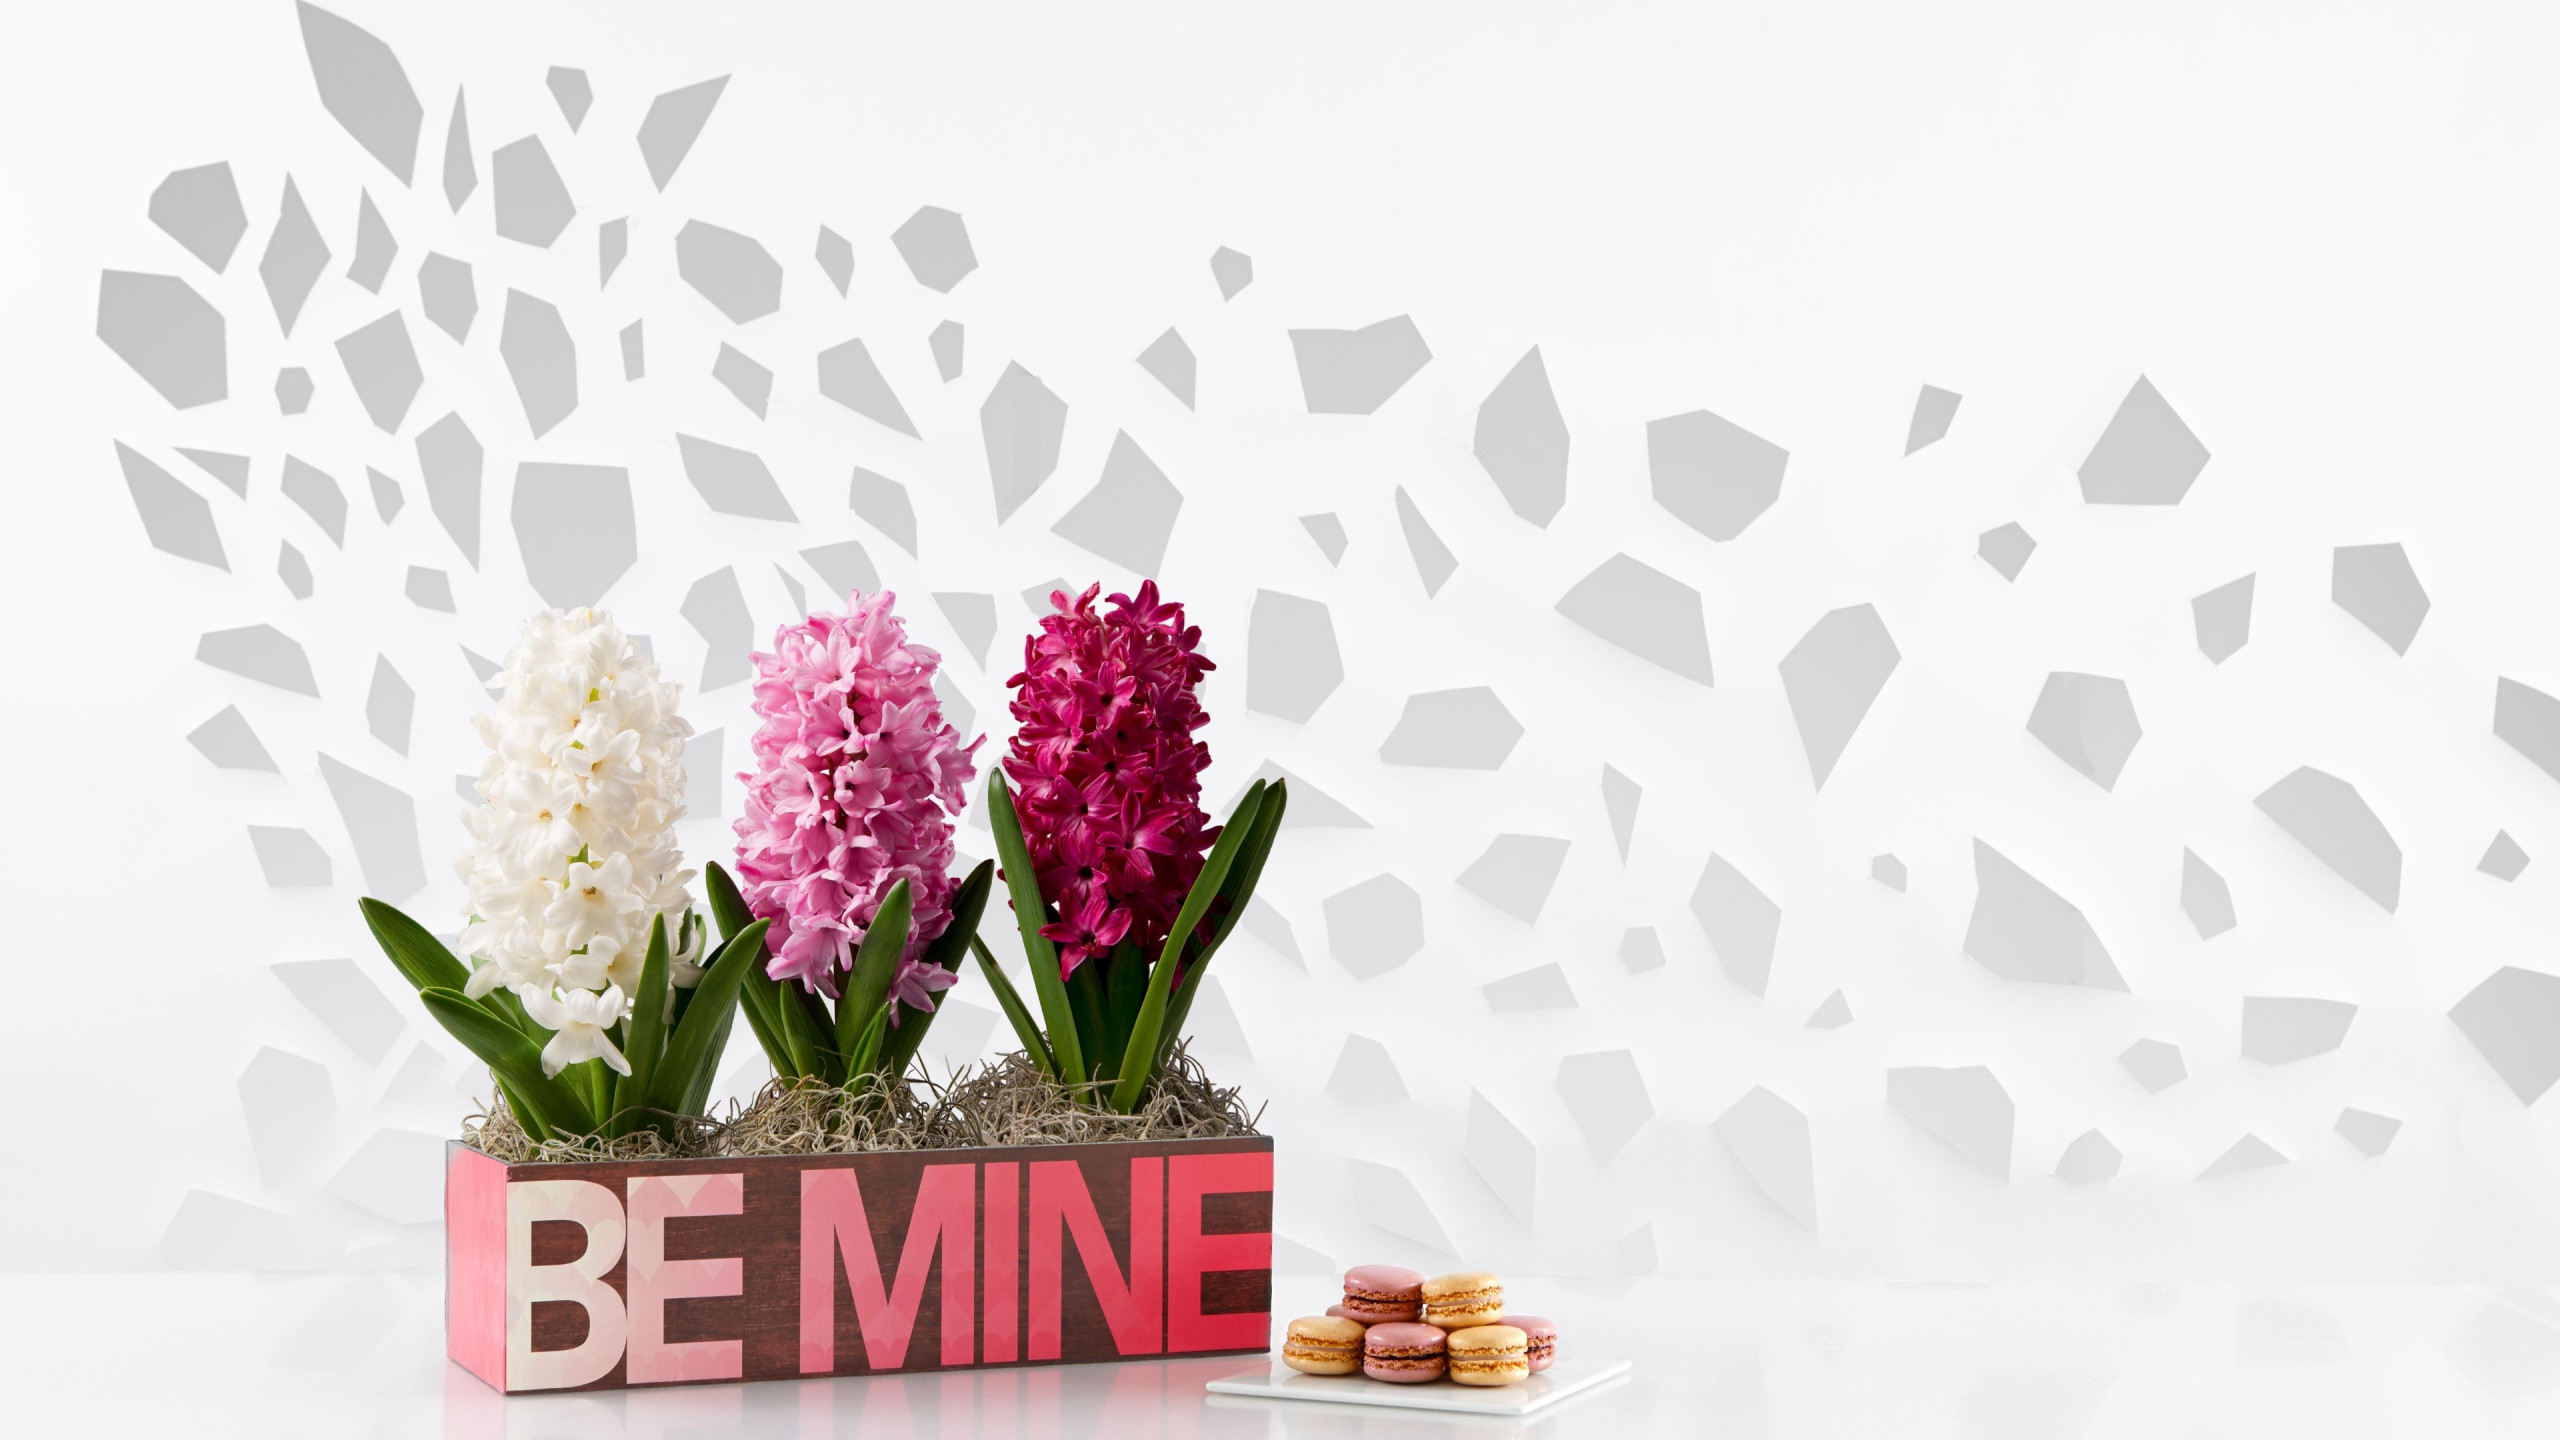 Flowers, be mine, cookies | 2560x1440 wallpaper